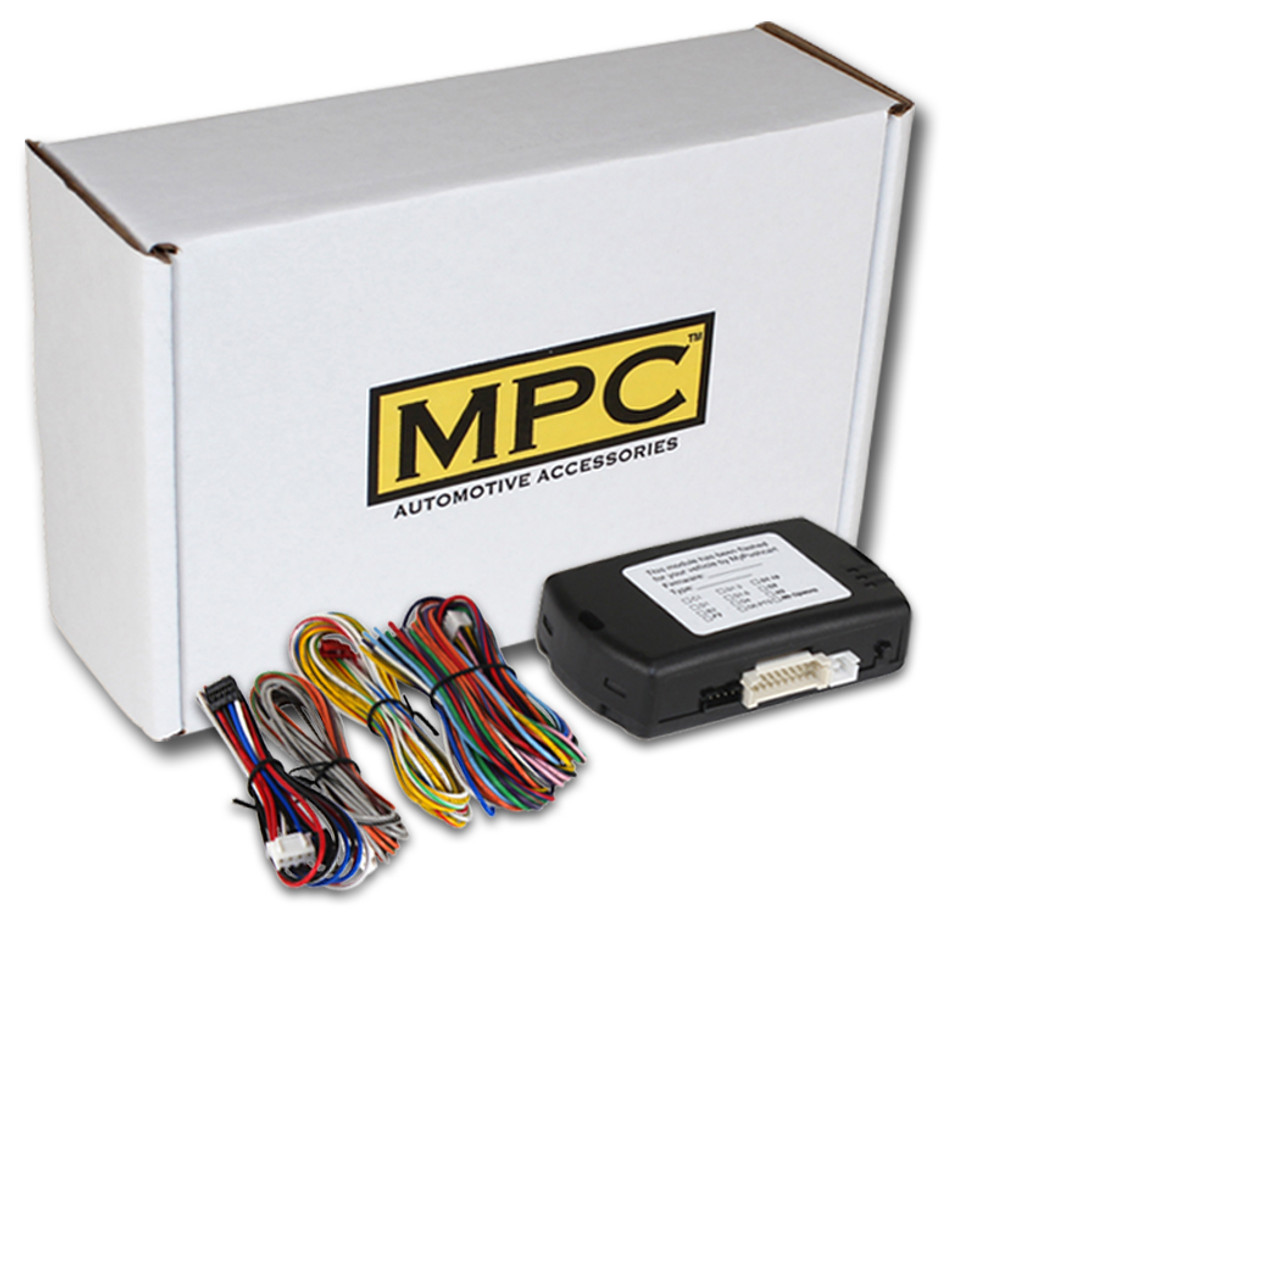 MPC Complete Remote Activated Remote Start Kit For 2017-2019 Lexus NX300h - Hybrid